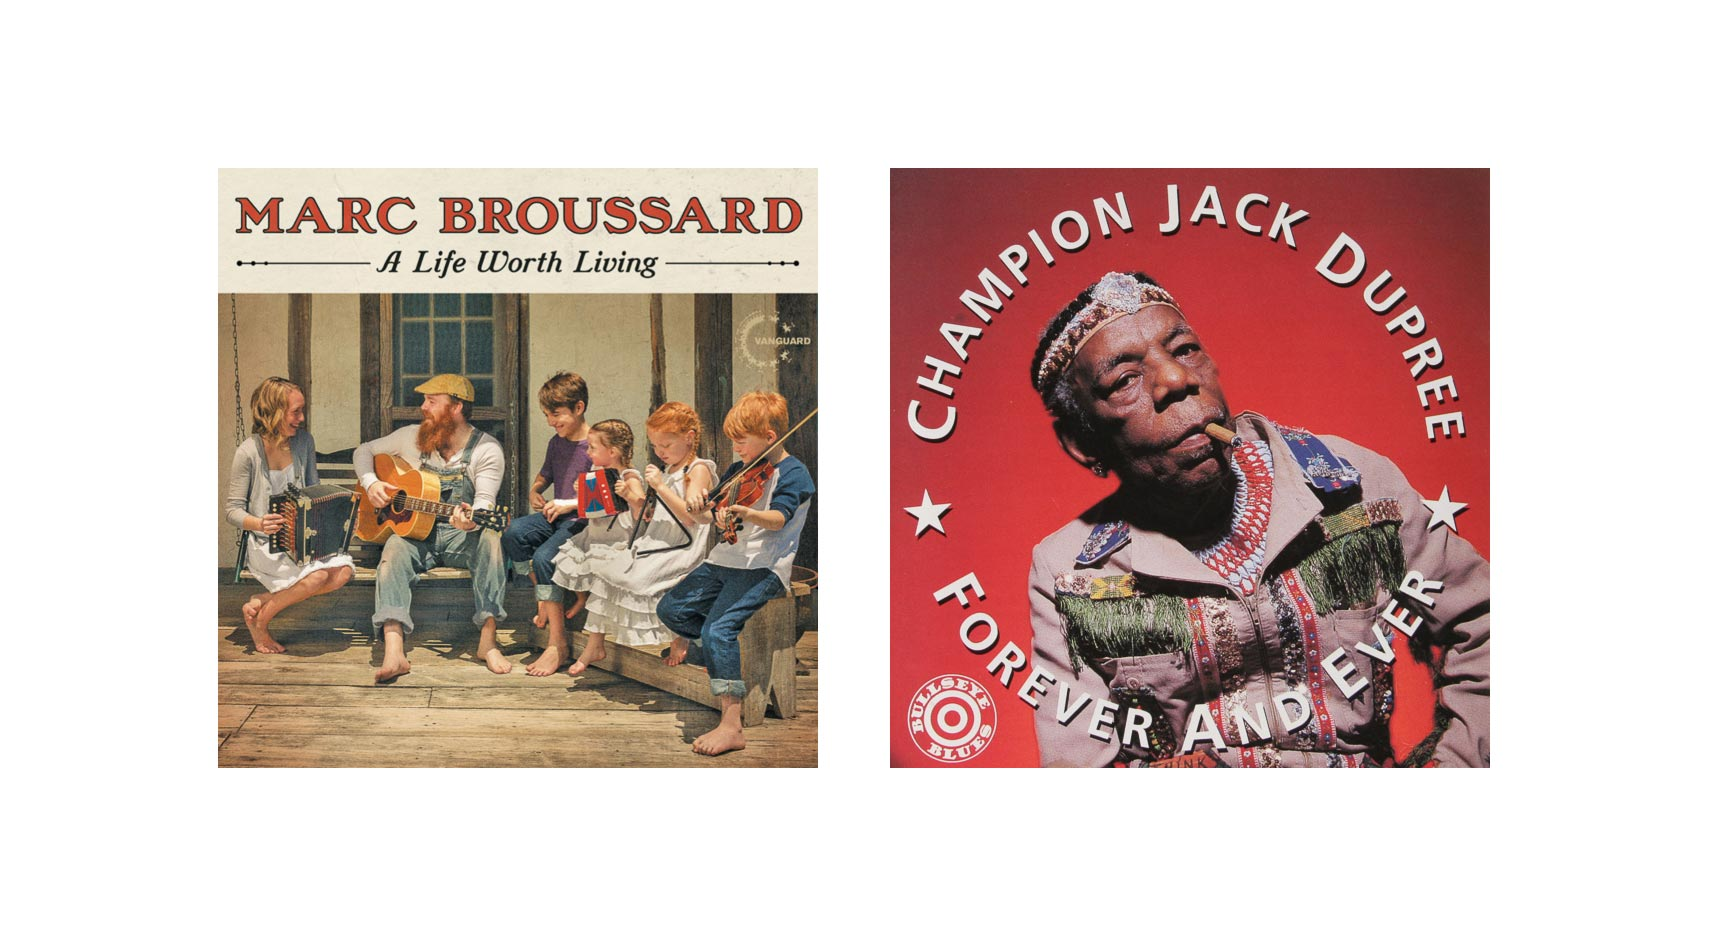 Marc Broussard cd cover, Champion Jack Dupree cd cover